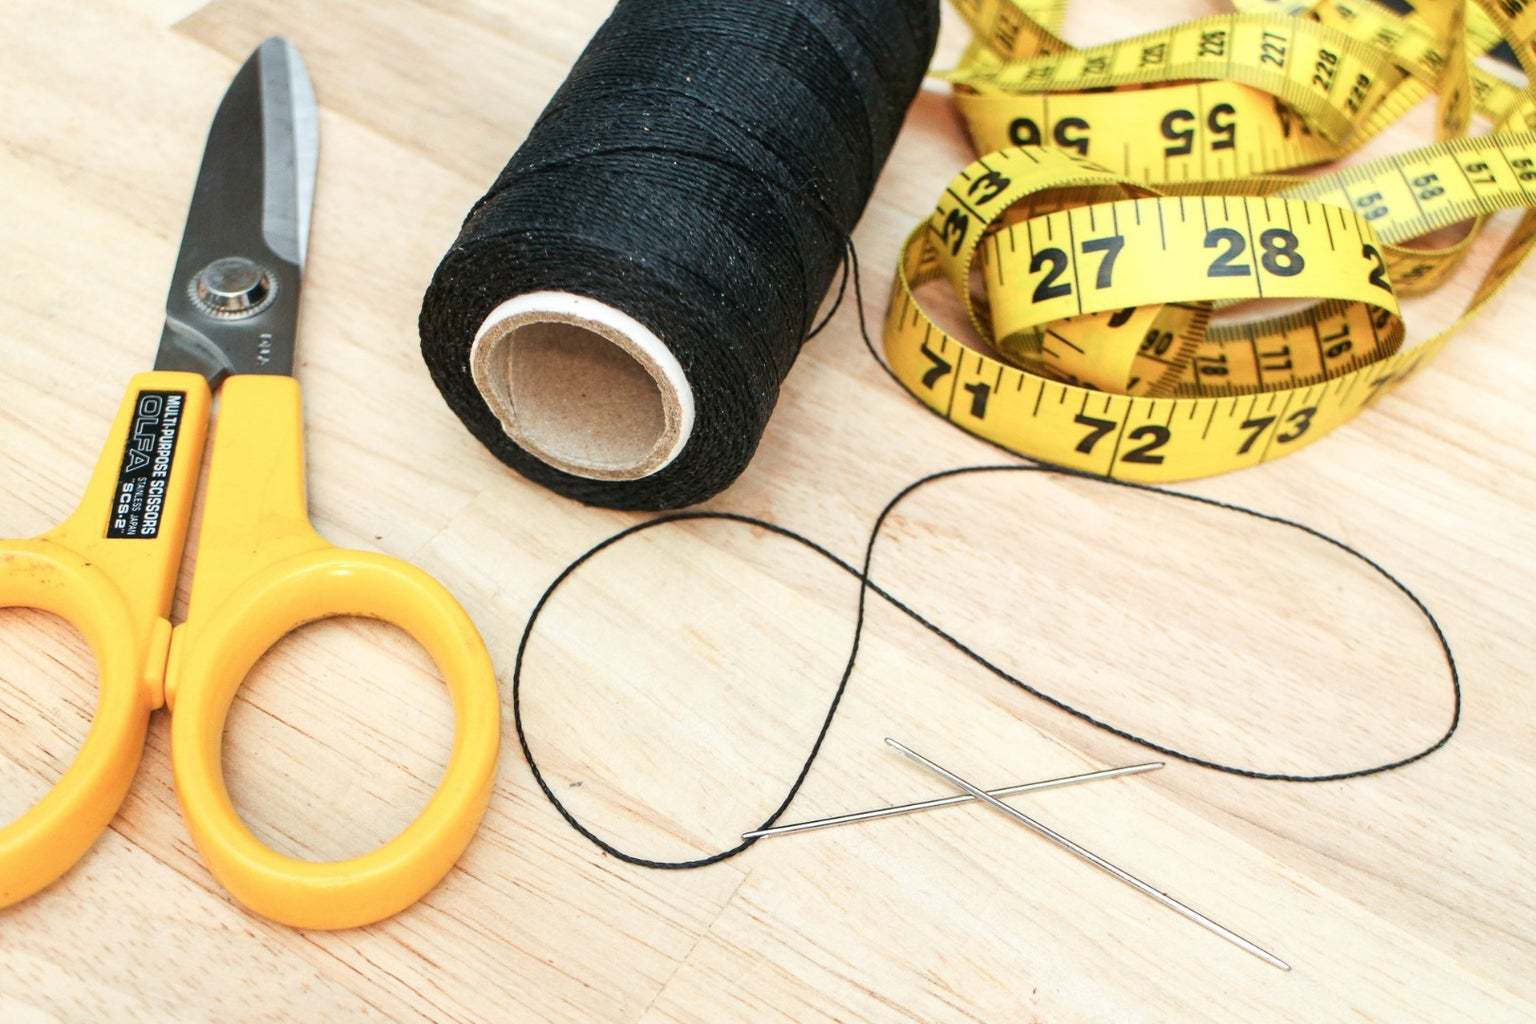 Prepping Your Needle and Thread